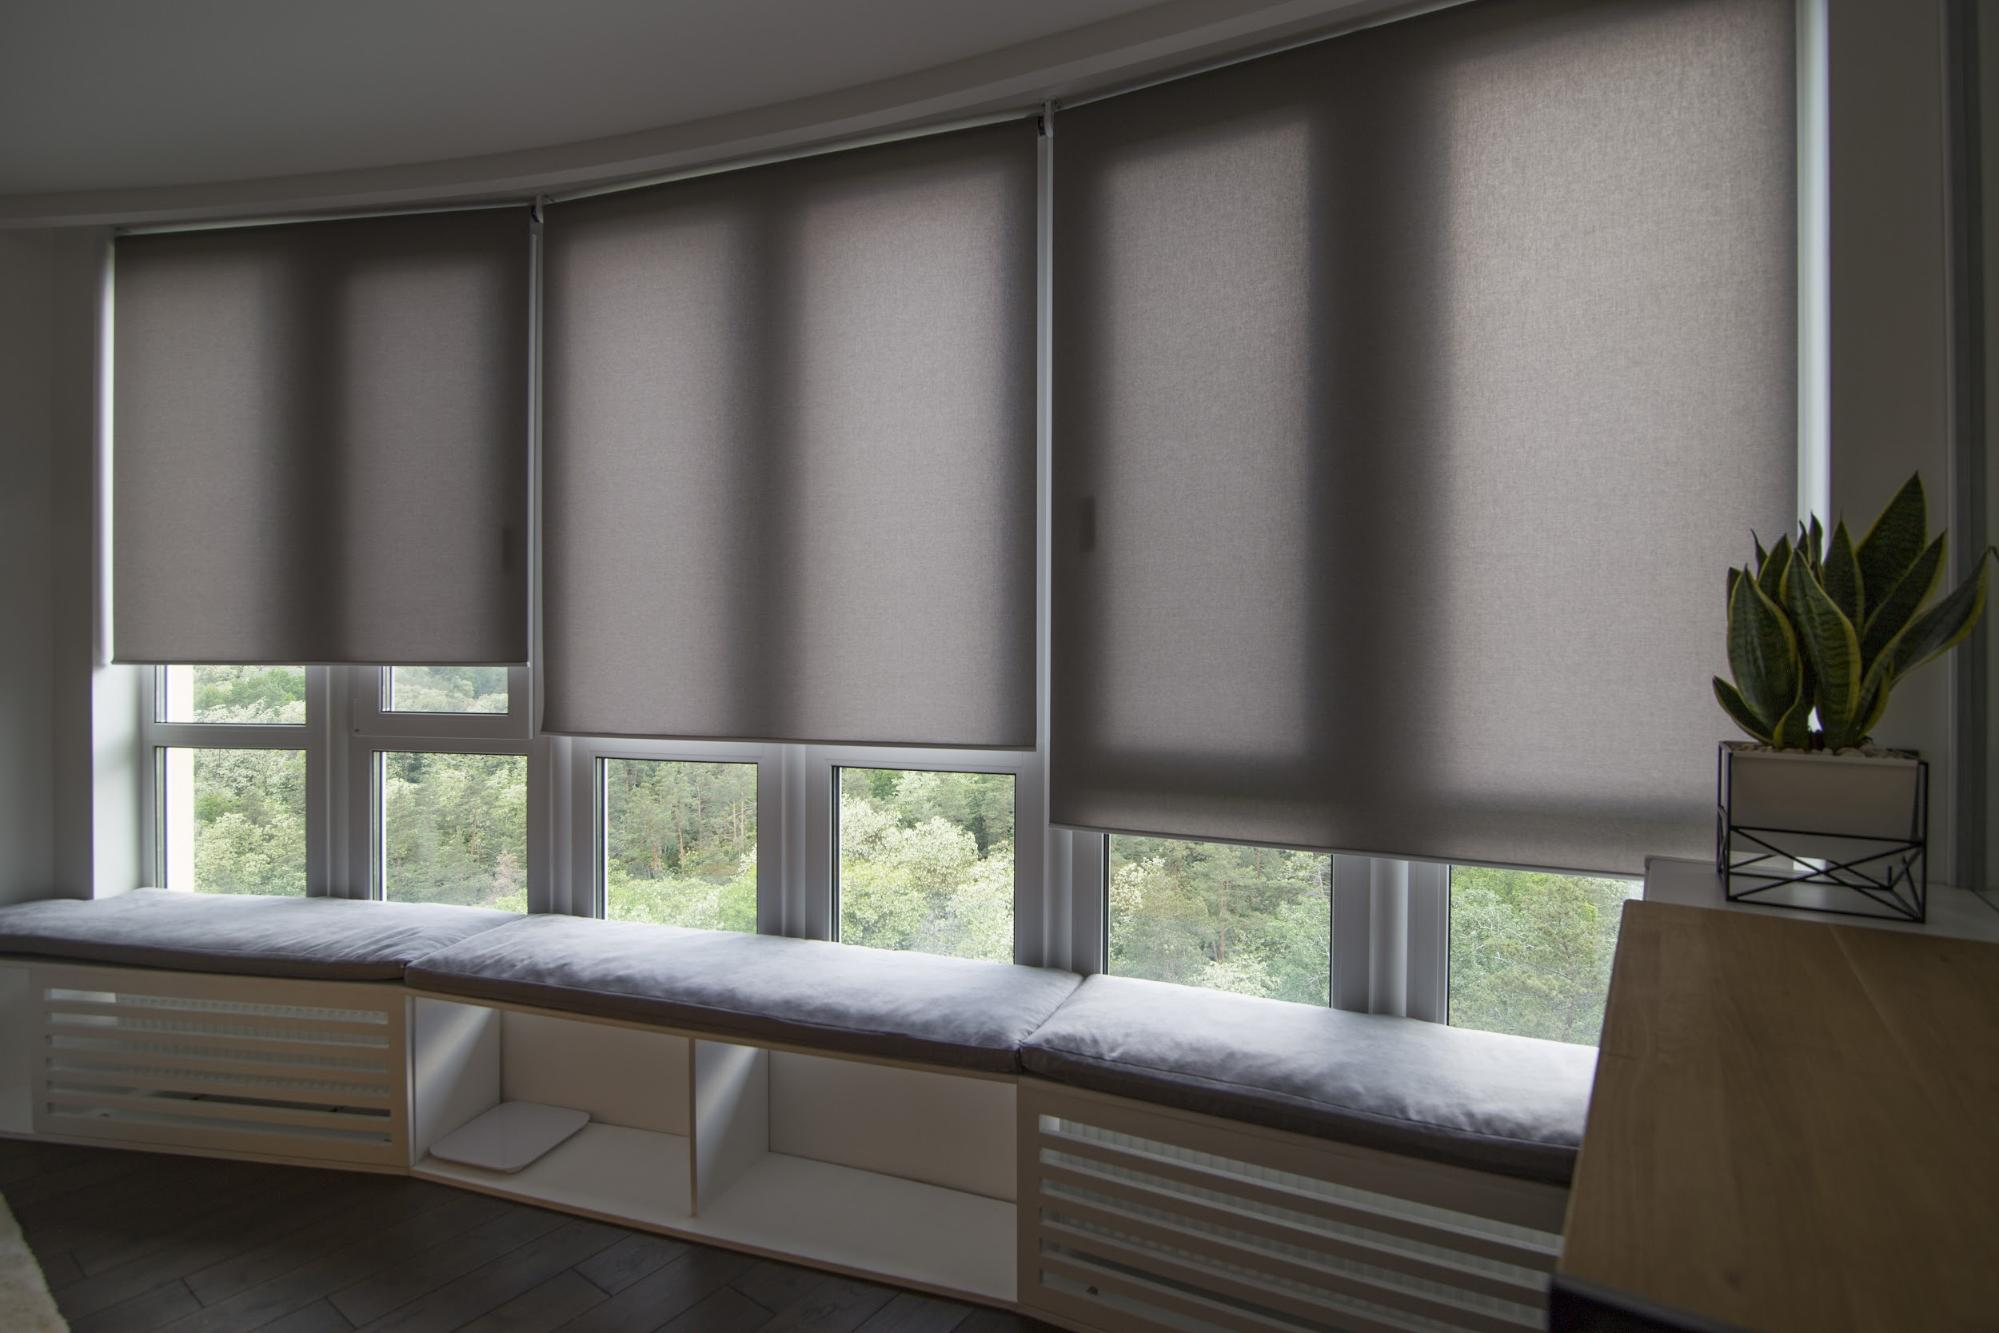 Three windows with sheer roller blinds